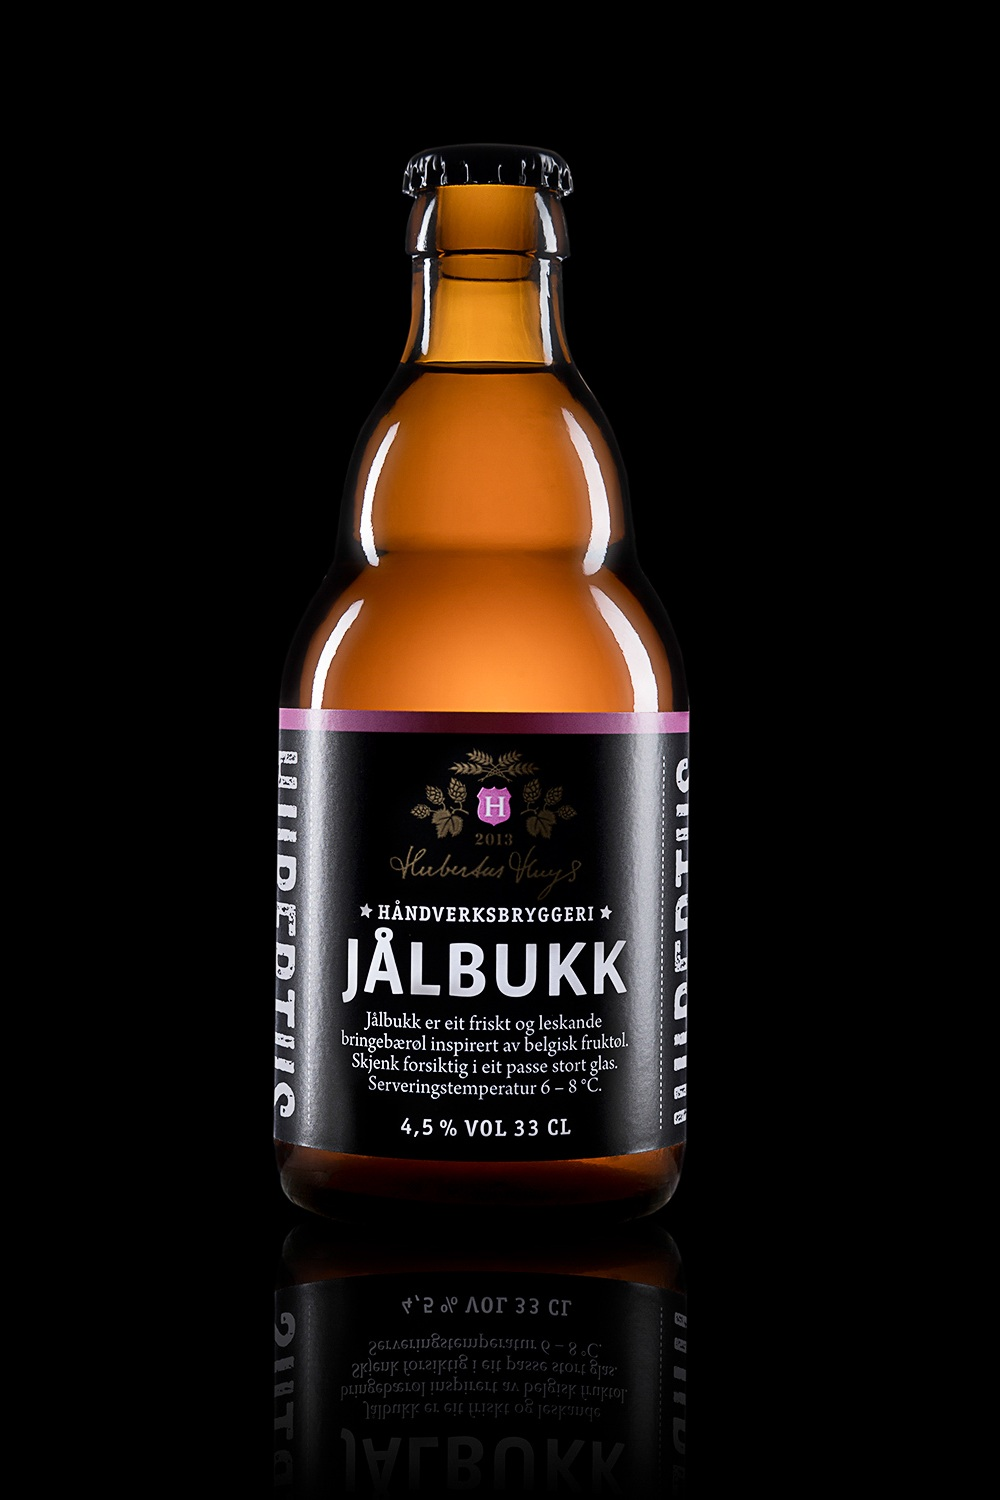 Jålbukk - Type: Fruit beer.Color: Blond orange/pink.Aroma: Fruity, rich and aromatic.Flavor: Fruity.Contents: Alcohol 4,5%.Food pairing: Fresh and tart desserts with berries and chocolate.